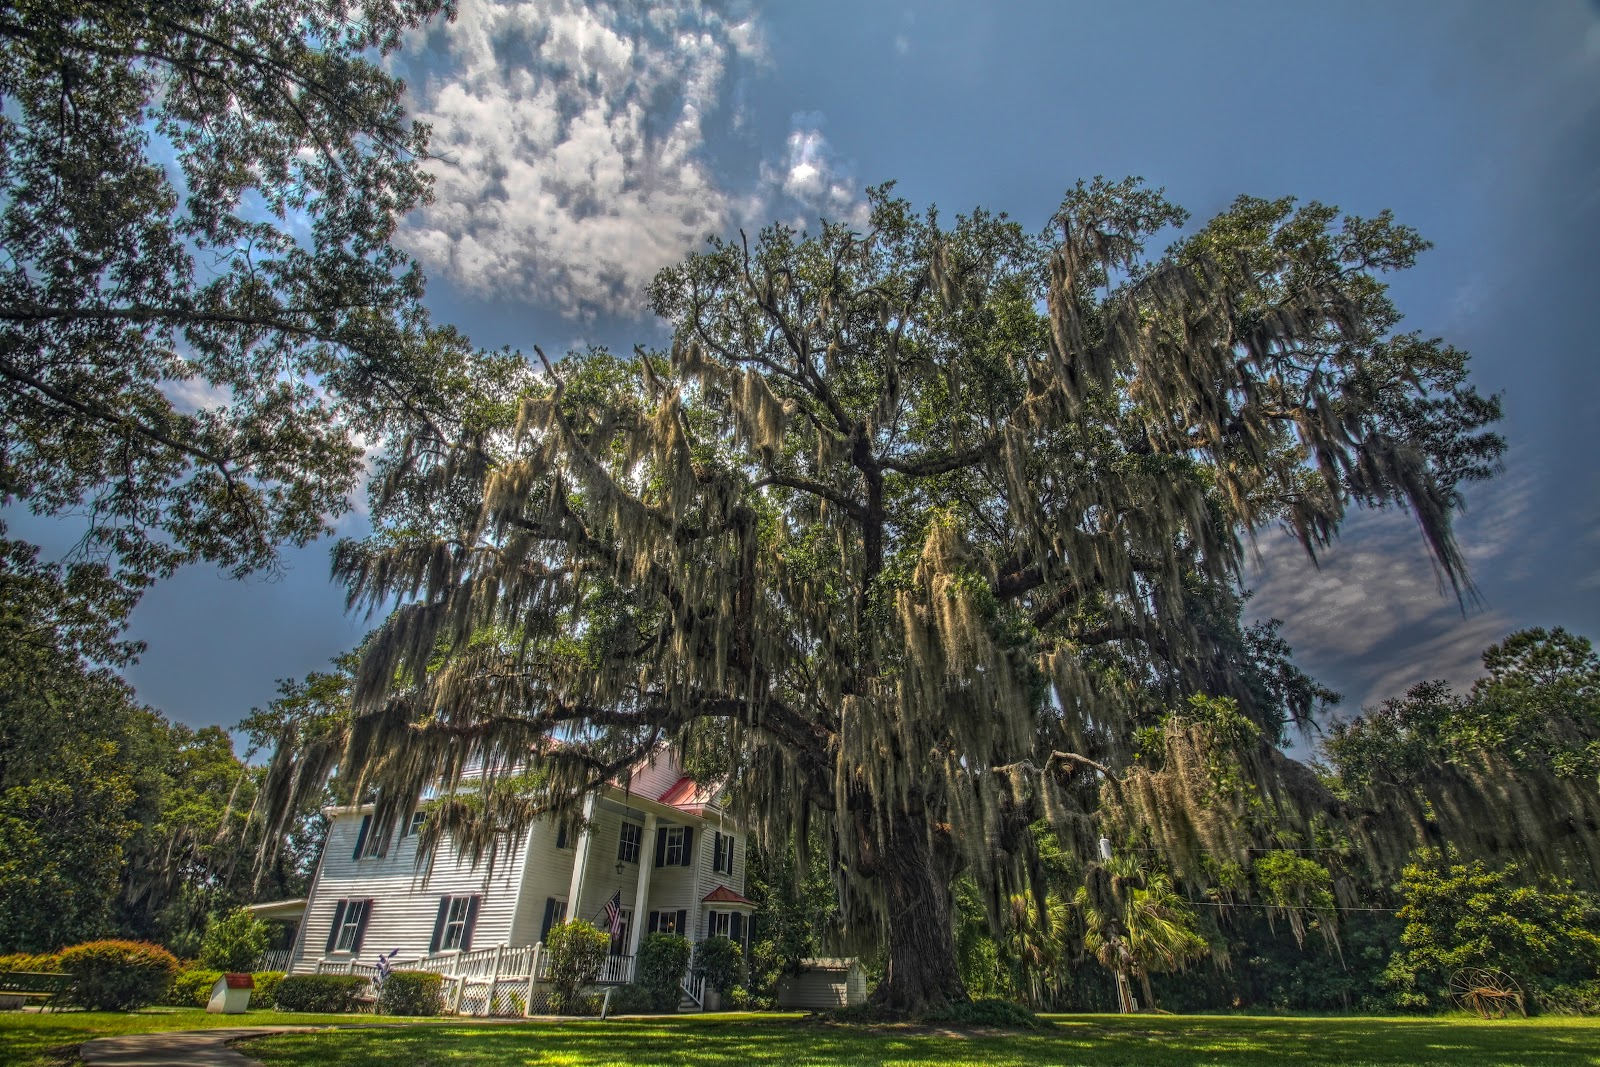 Located inside the beautiful historic Frampton House, the Lowcountry Visitors Center & Museum features a 1900s recreated plantation parlor, as well as displays and antiques donated by other museums.